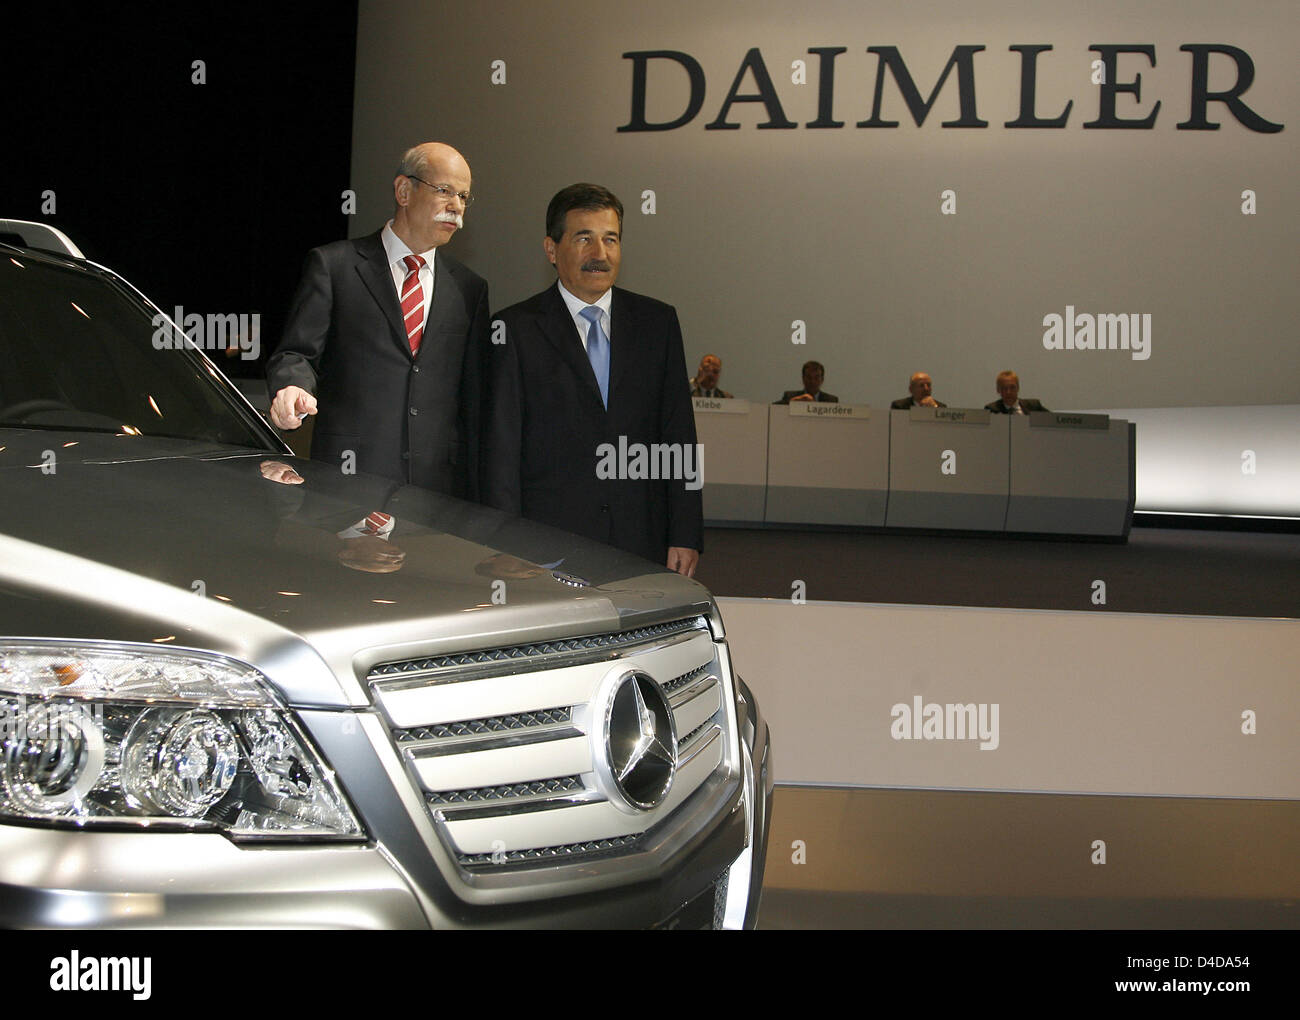 daimler chryslers strategy The daimler group we are one of the biggest producers of premium cars and the world's biggest manufacturer of commercial vehicles with a global reach we provide financing, leasing, fleet management, insurance and innovative mobility services.